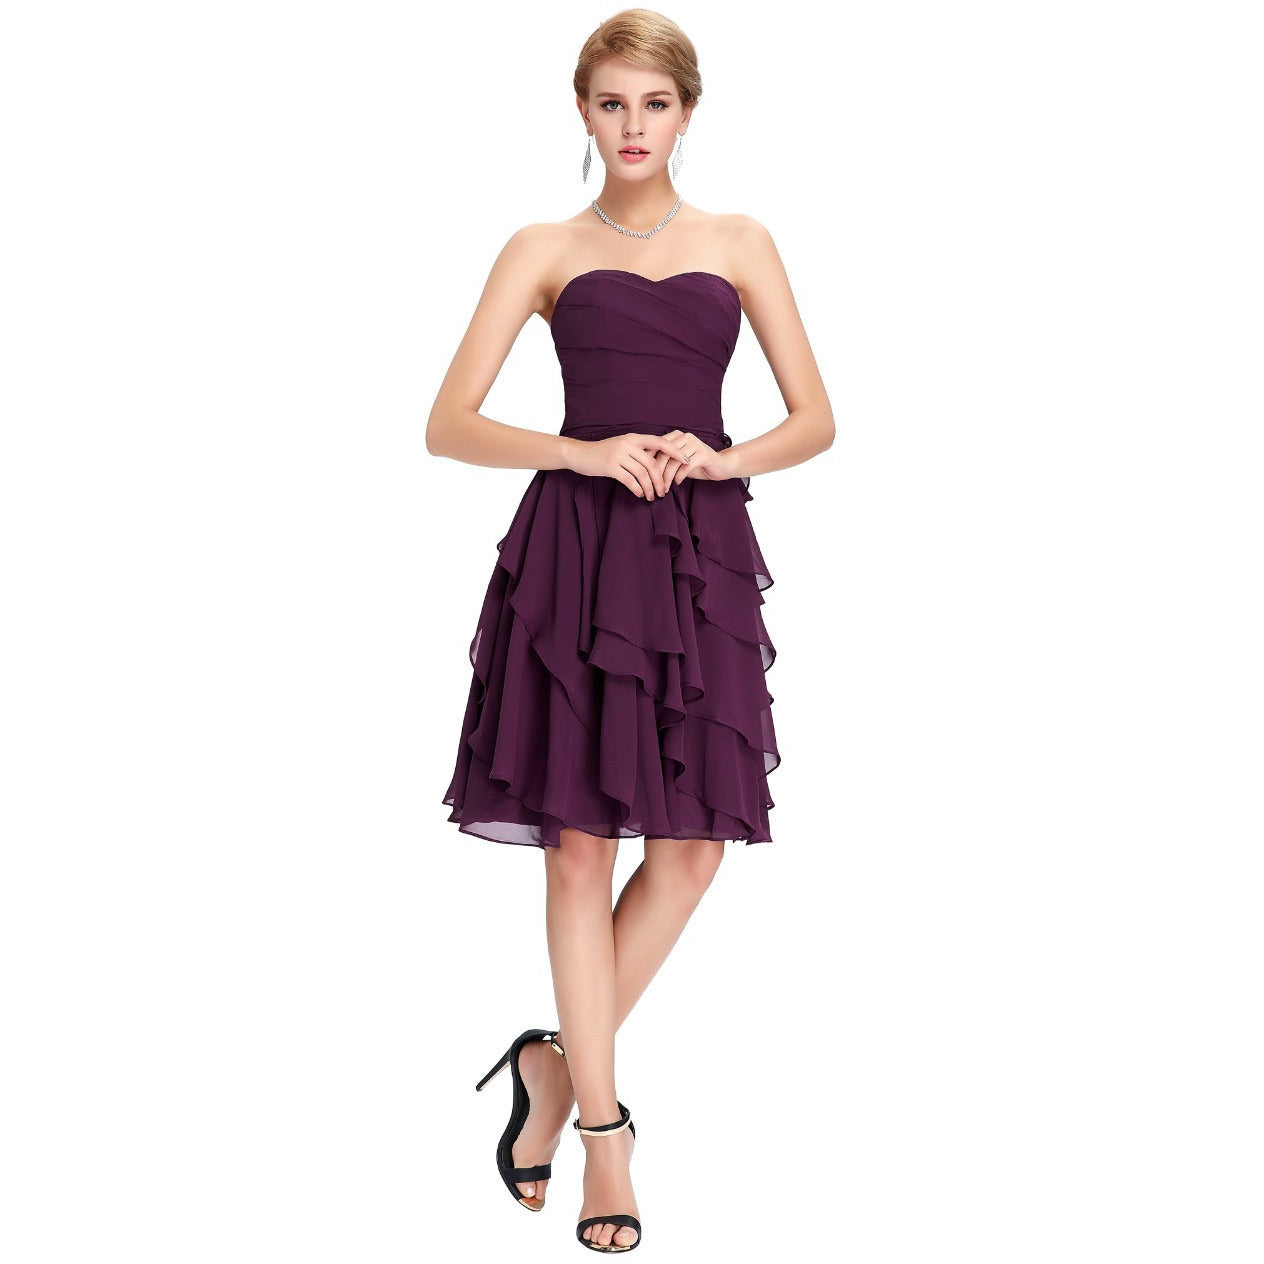 Grace Karin Chiffon Short Prom Dress - Indifashion